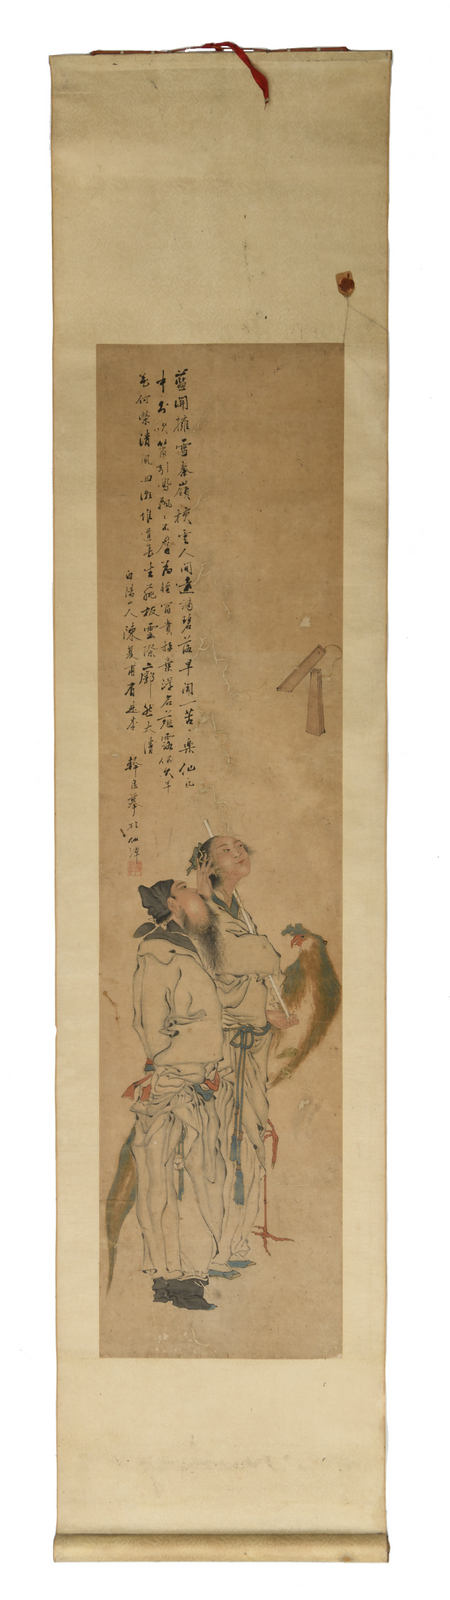 A scroll depicting an allegoric scene referring to the Chinese pandemonium, watercolour on paper, 19thC, 43 x 190 (with mount ) - 32 x 132 cm (without mount)